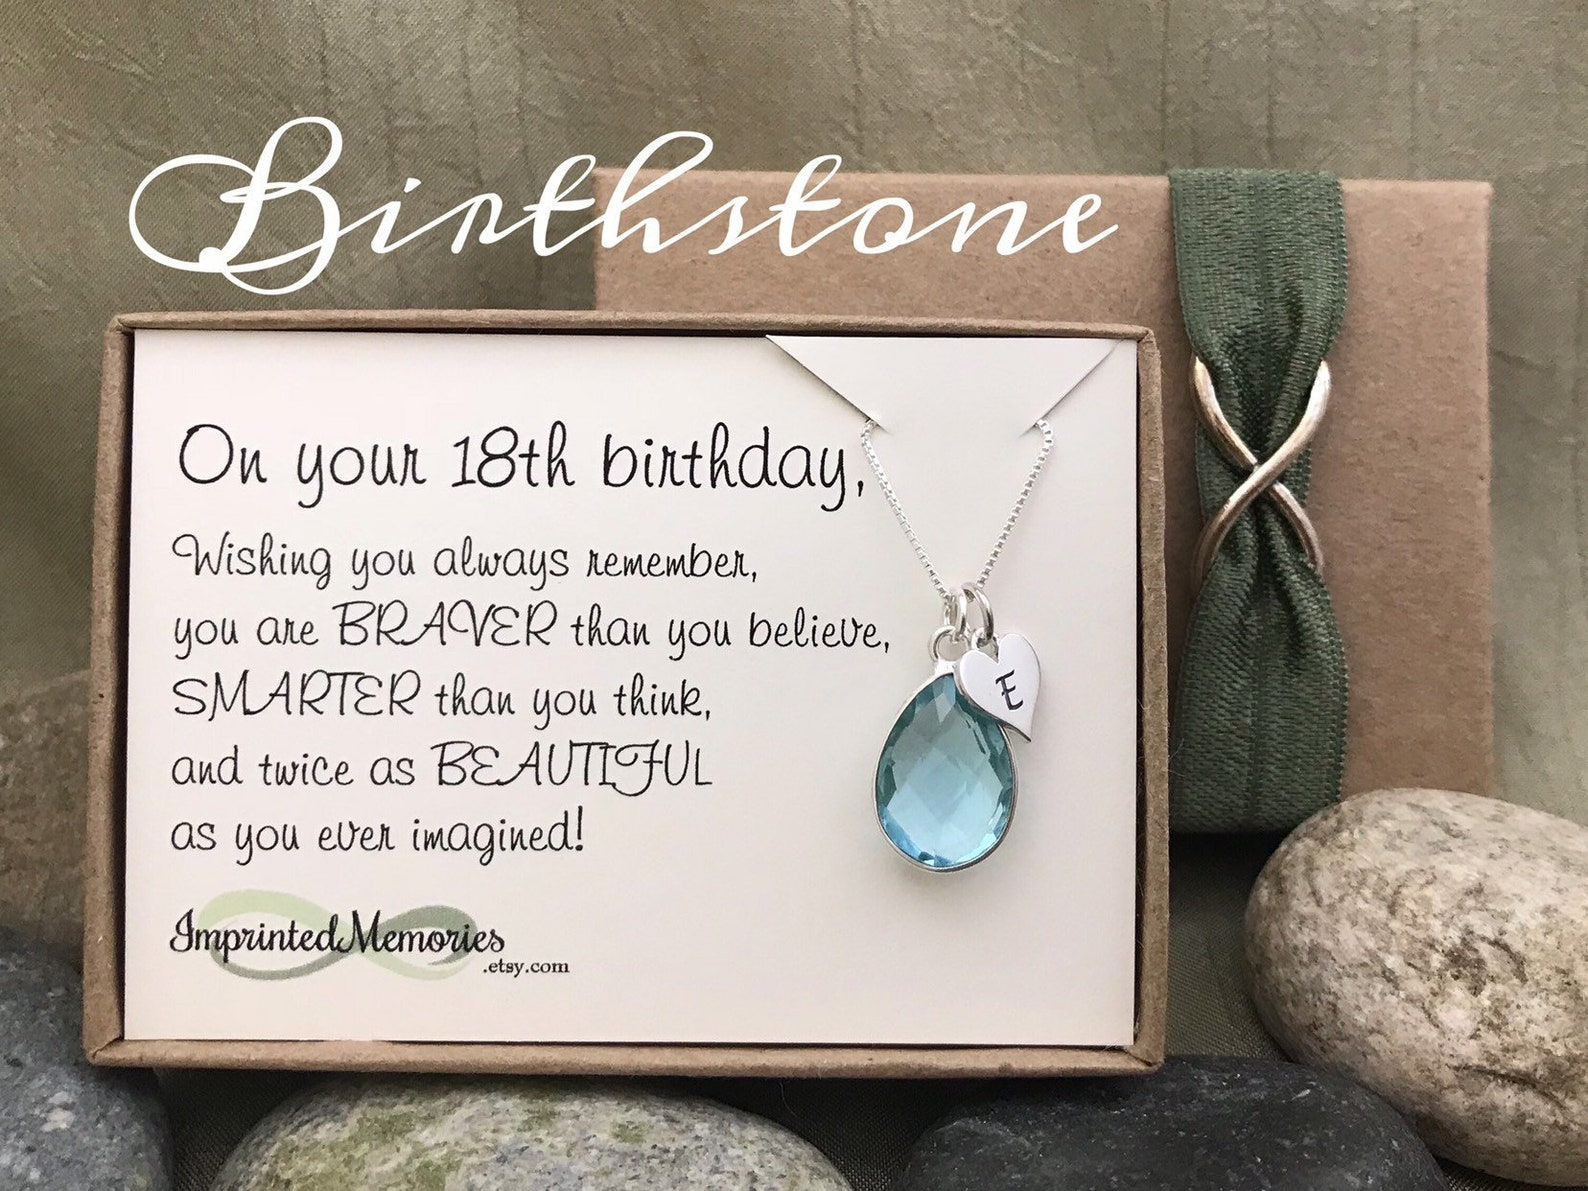 18th birthstone necklace